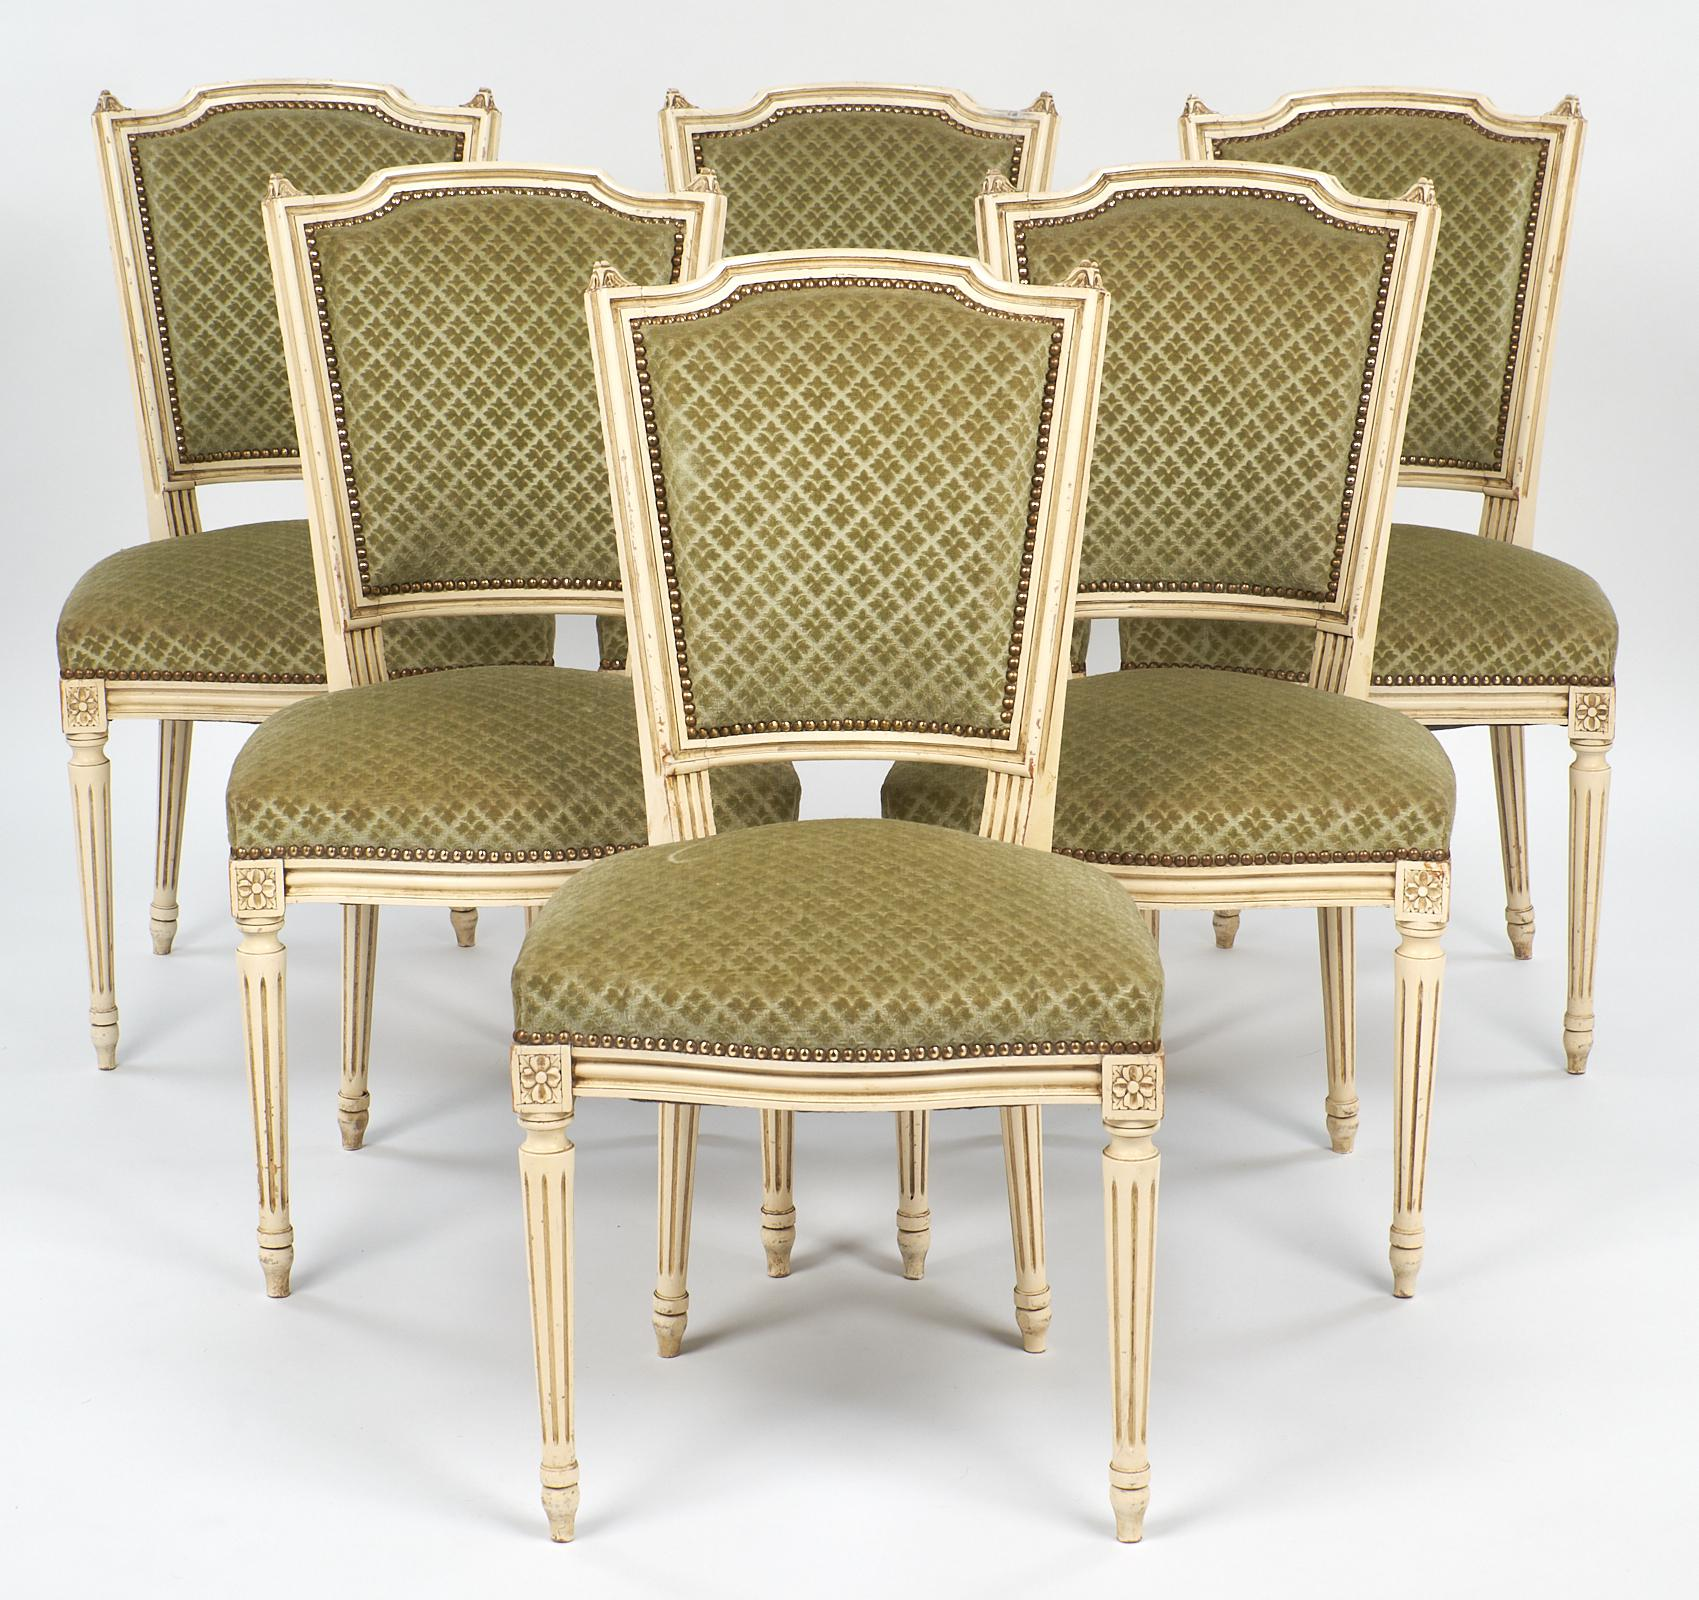 Delicieux Six Dining Chairs With Painted Louis XVI Style Wood Frames. All Of The  Chairs Have